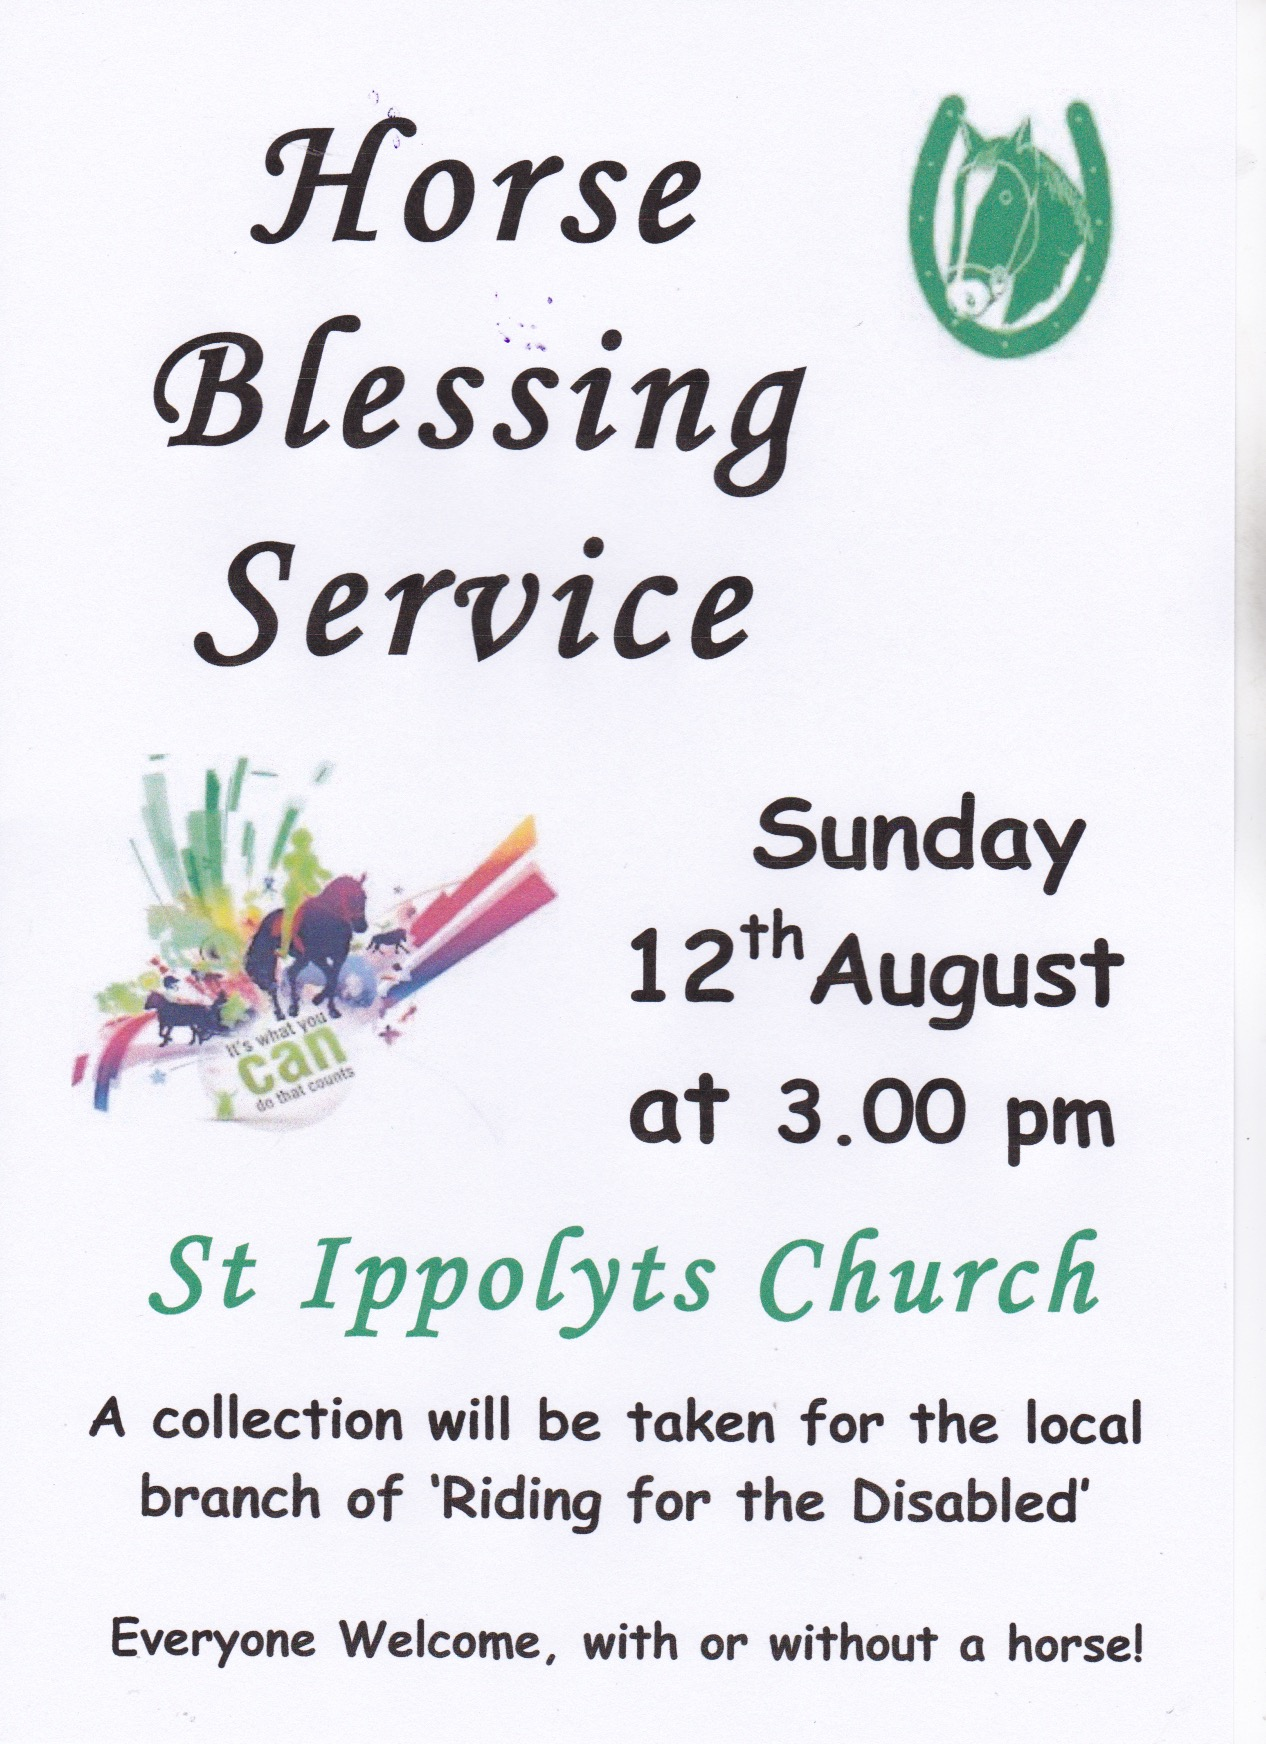 Horse Blessing Service, Sunday 12th August at 15:00hrs